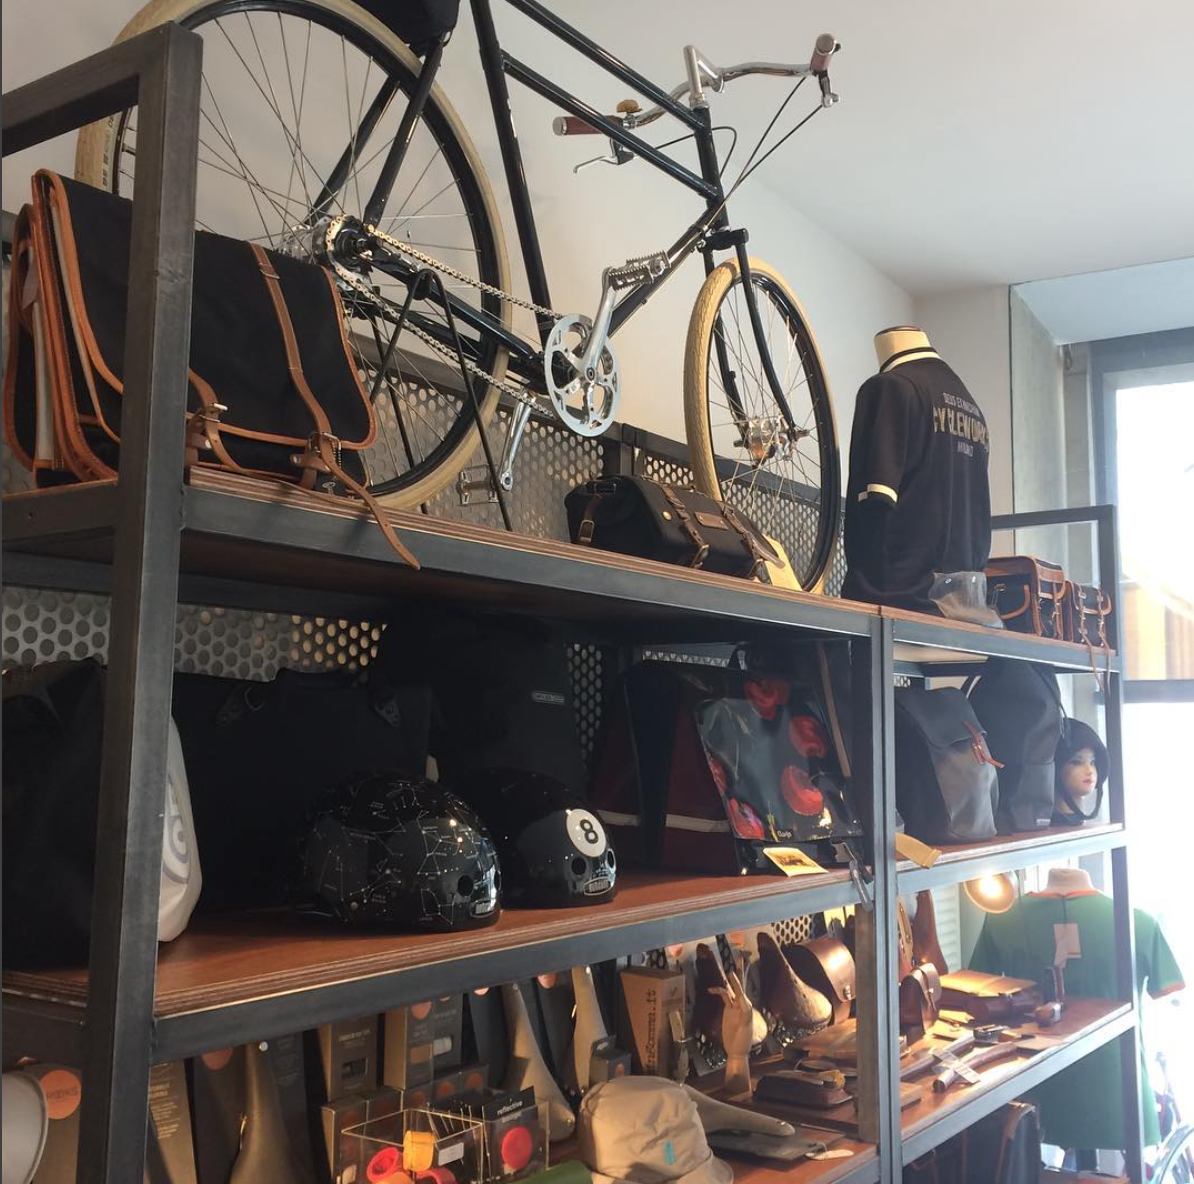 BRUGES - EXCELLER BIKESPhilipstockstraat 438000 Bruggewww.excellerbikes.comOpen monday - saturday (10:00 - 18:00)Closed on sunday